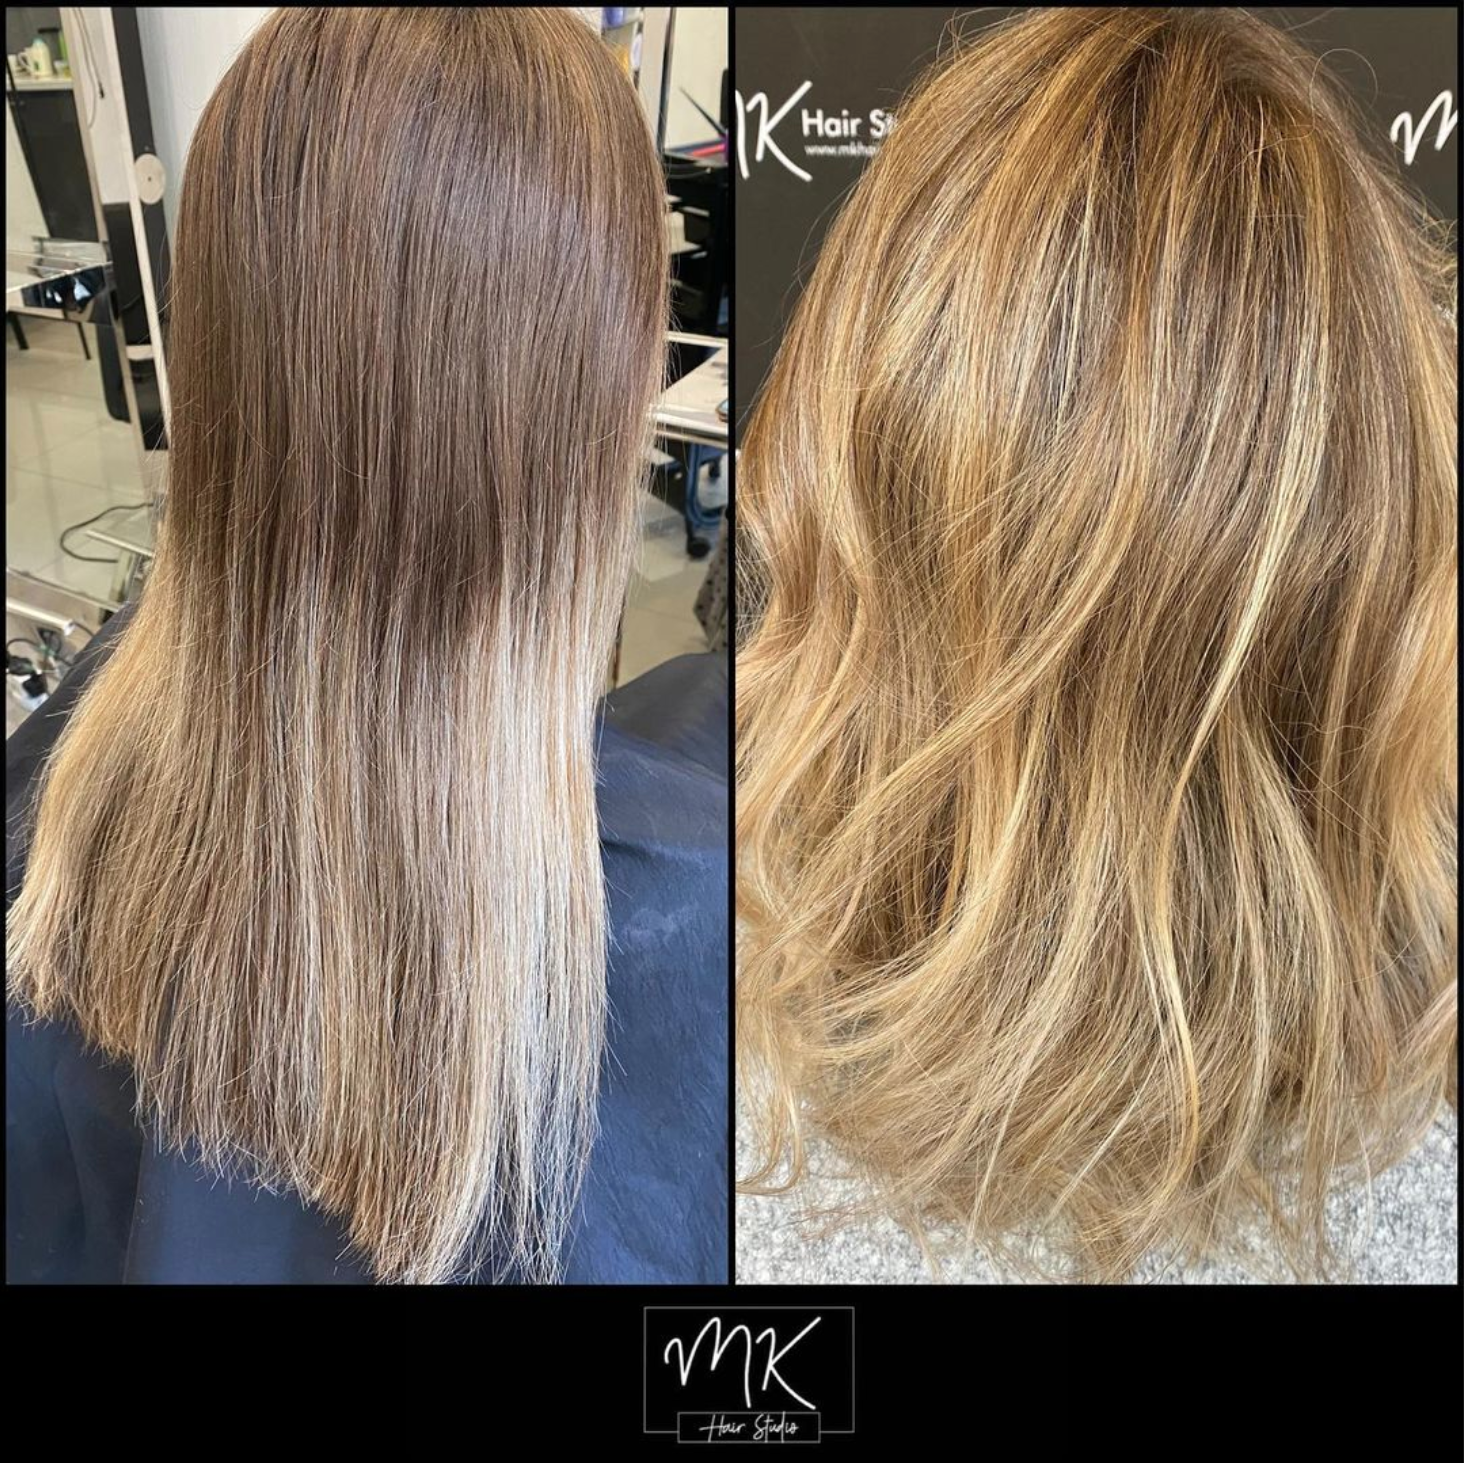 Before & after - Natural blonde Sombre